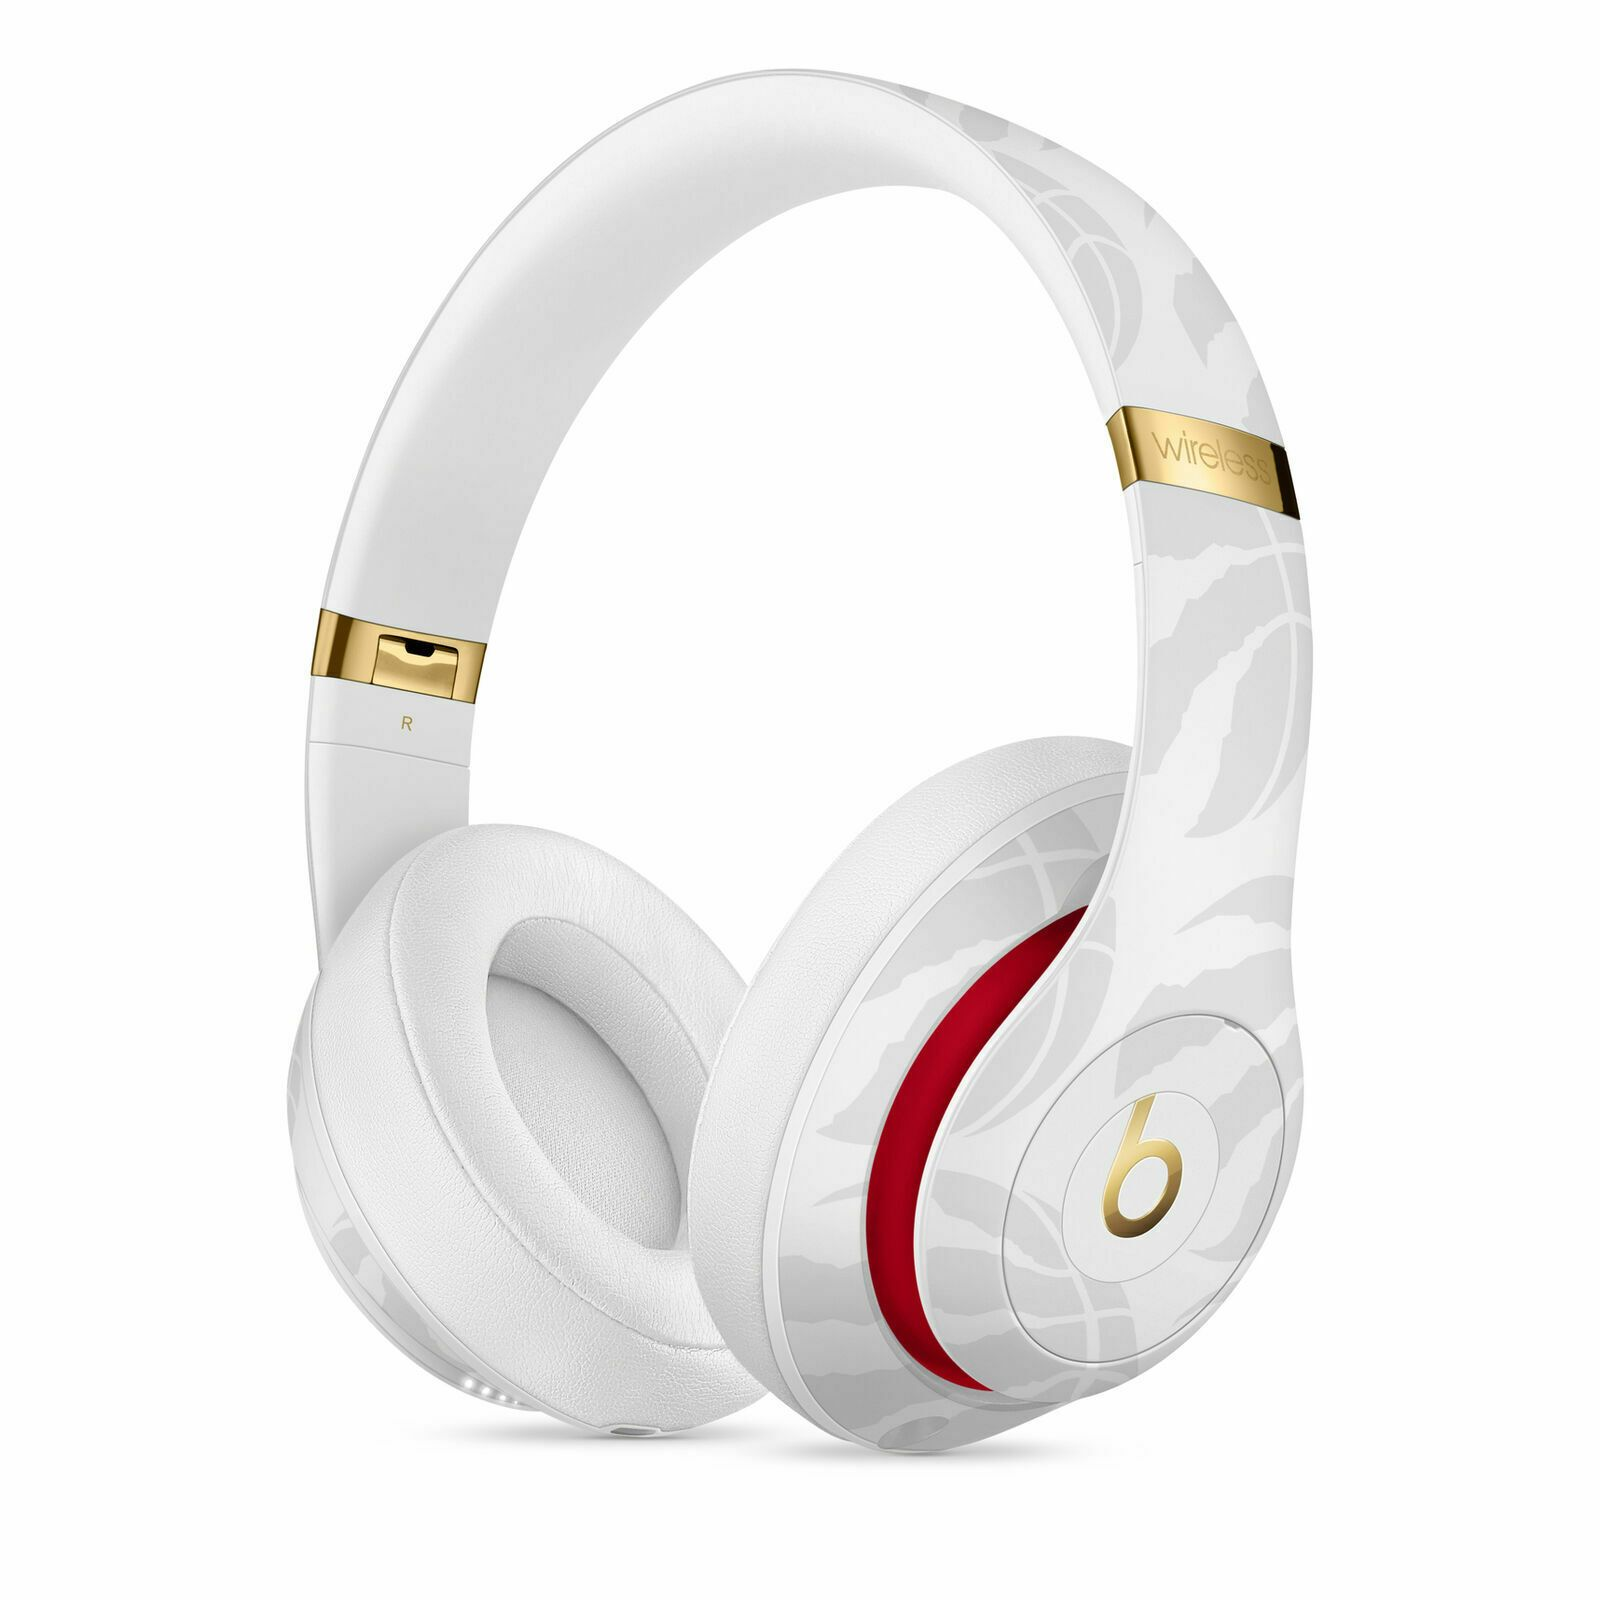 Beats By Dr Dre Studio3 Wireless Headphones Nba Collection Raptors White The Electronic Spot In 2020 Wireless Headphones Beats Headphones Wireless Headphones